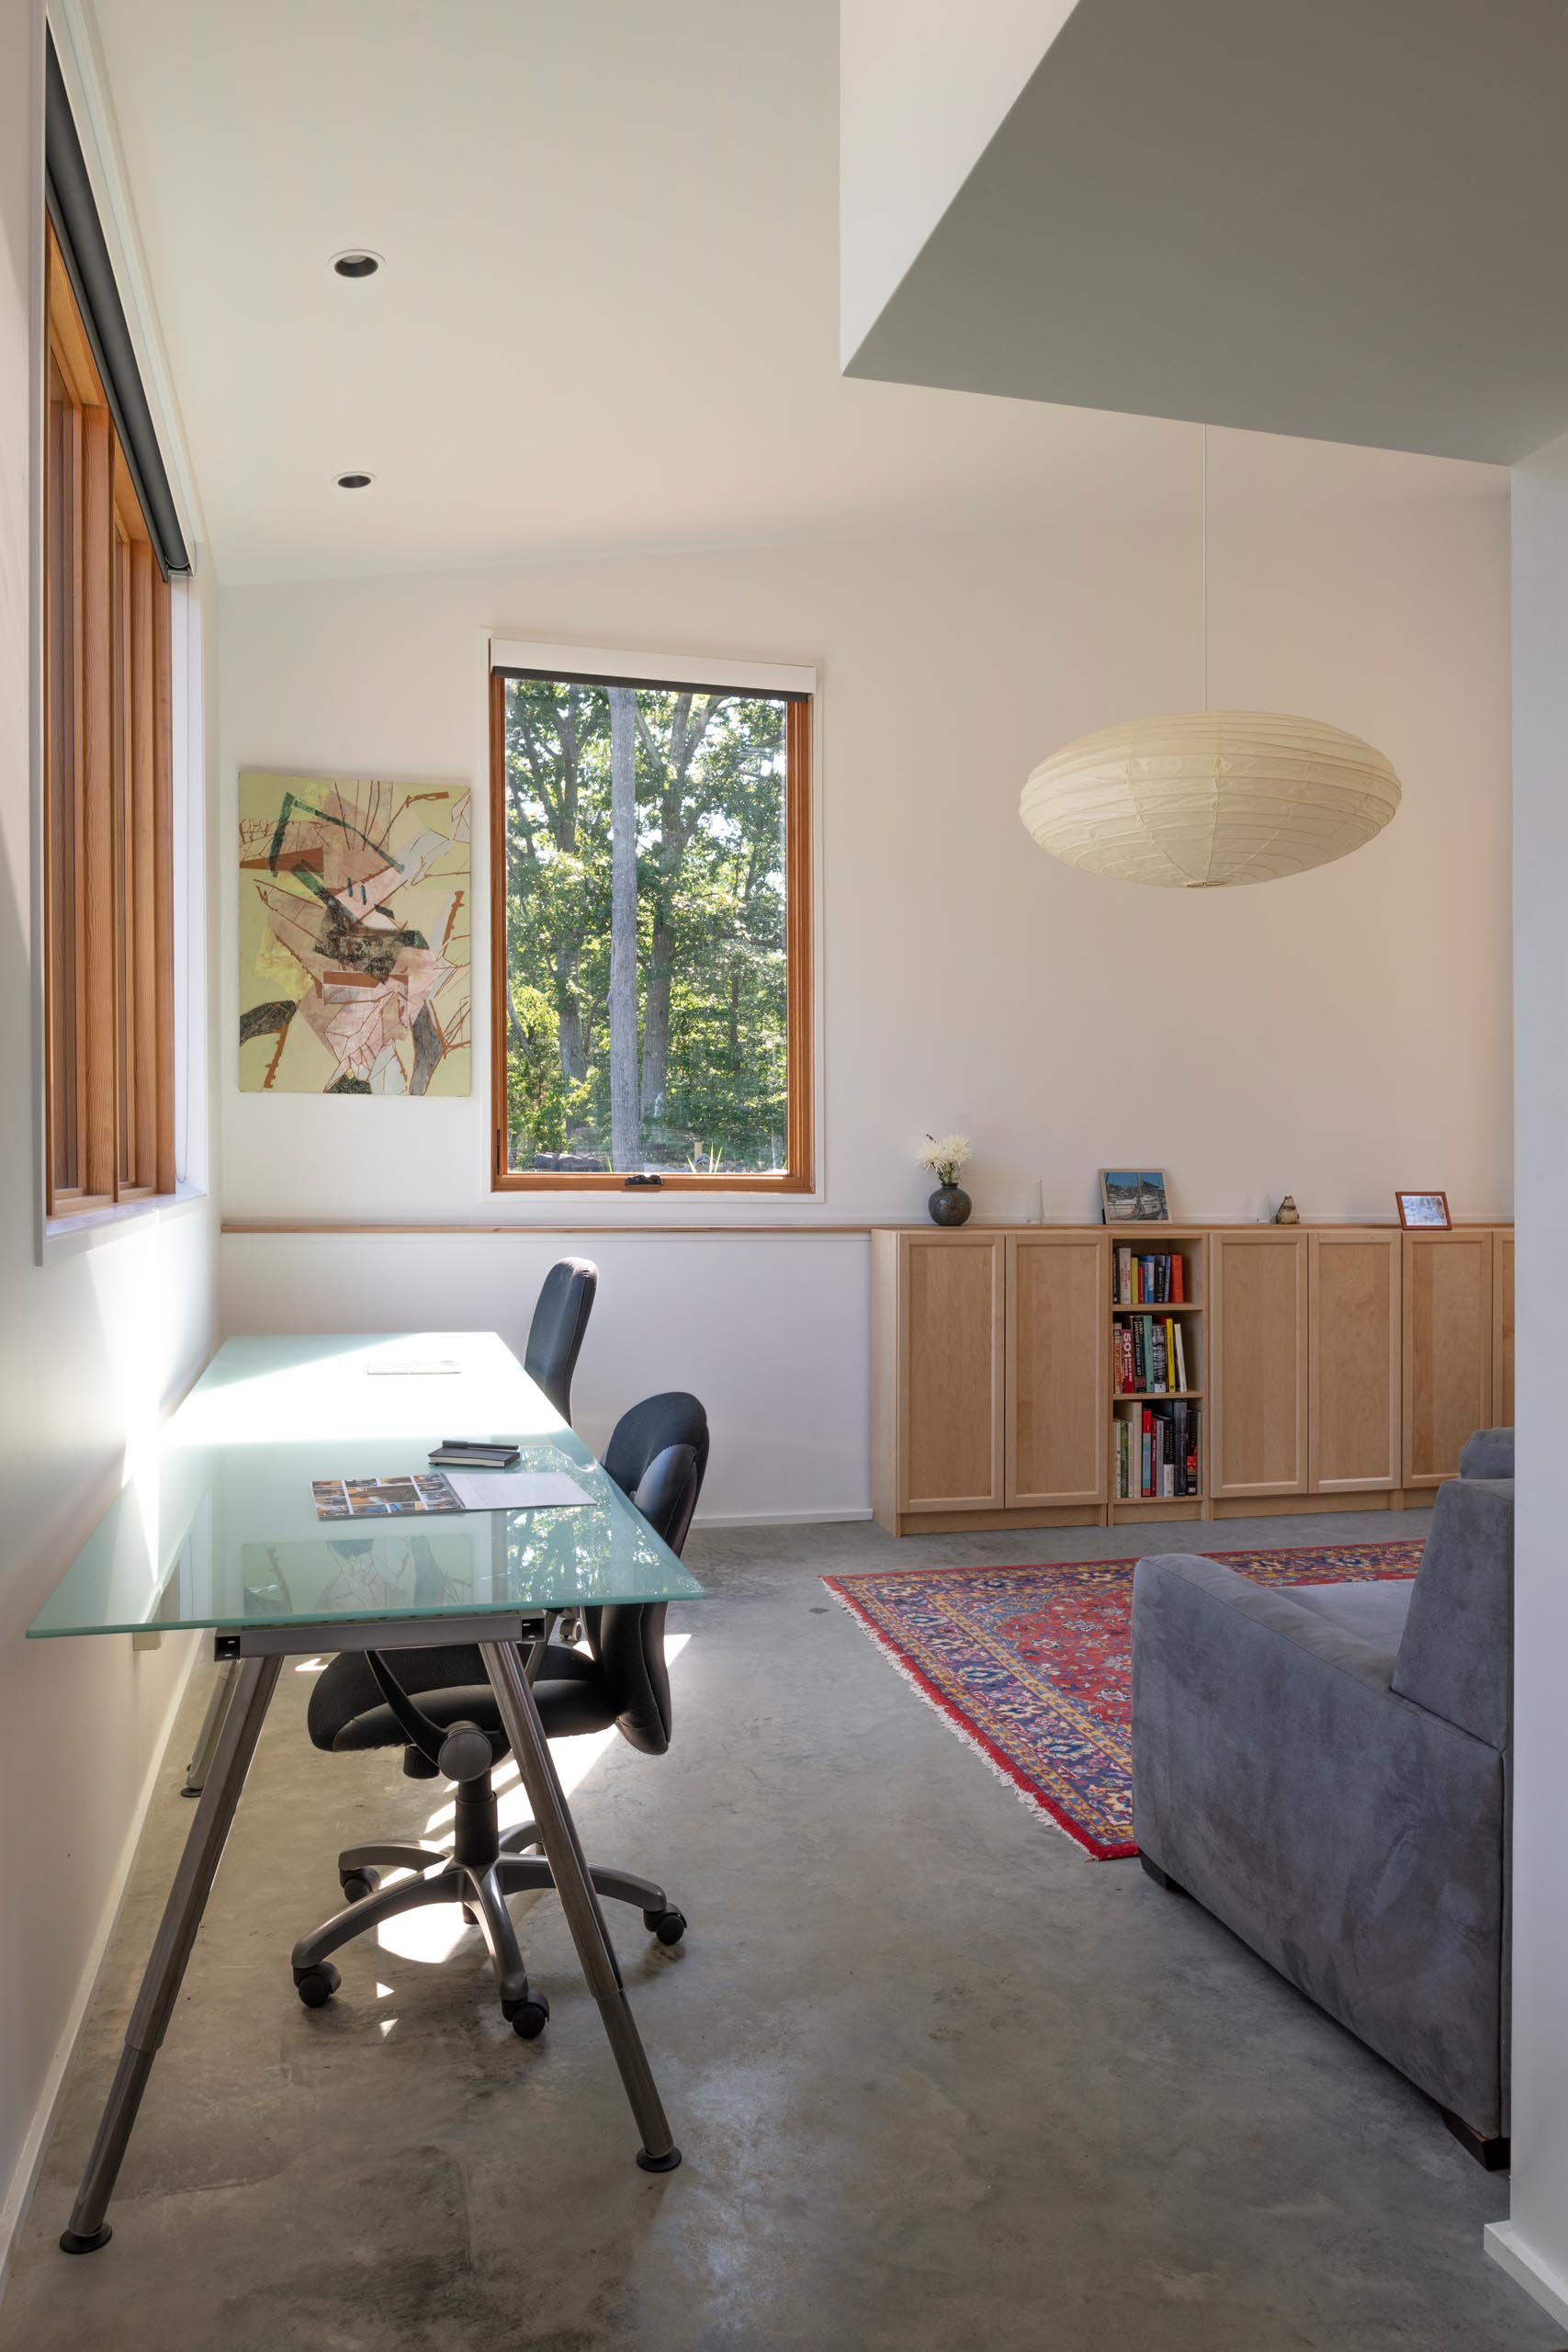 A home office with room for multiple people to work includes a long desk by the window, a couch, and storage cabinets.